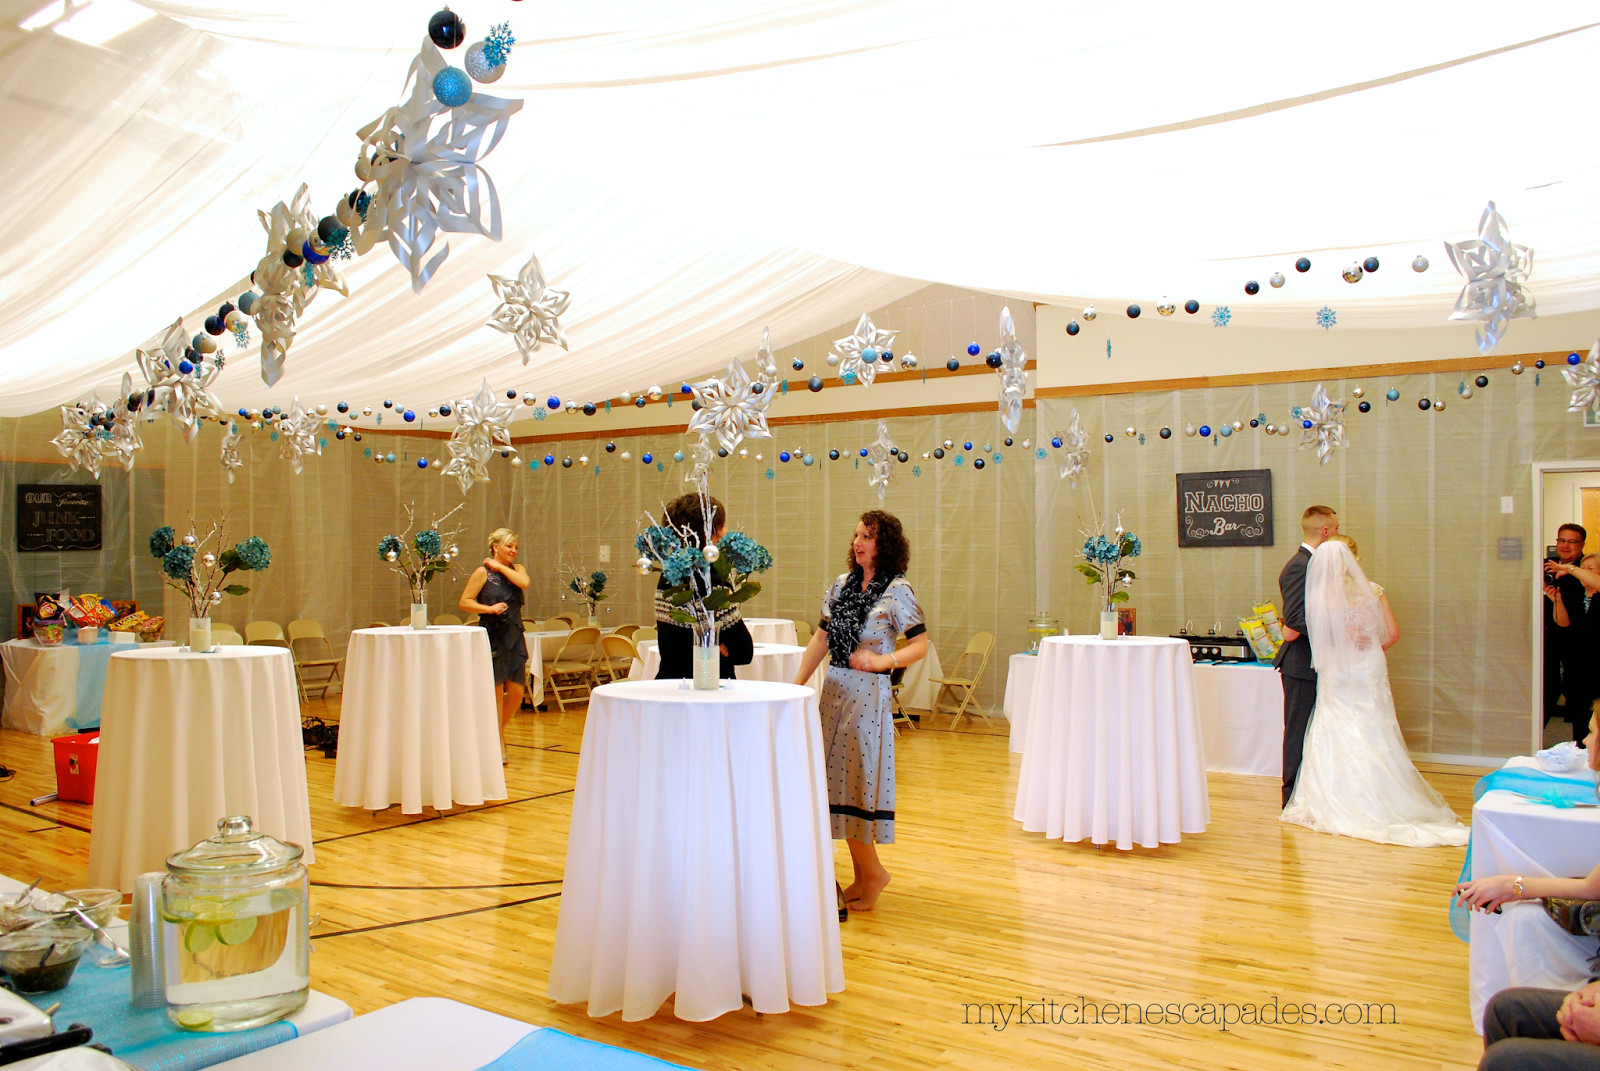 DIY Draping For Wedding  Wedding Ceiling Draping Tutorial How to Measure and Hang